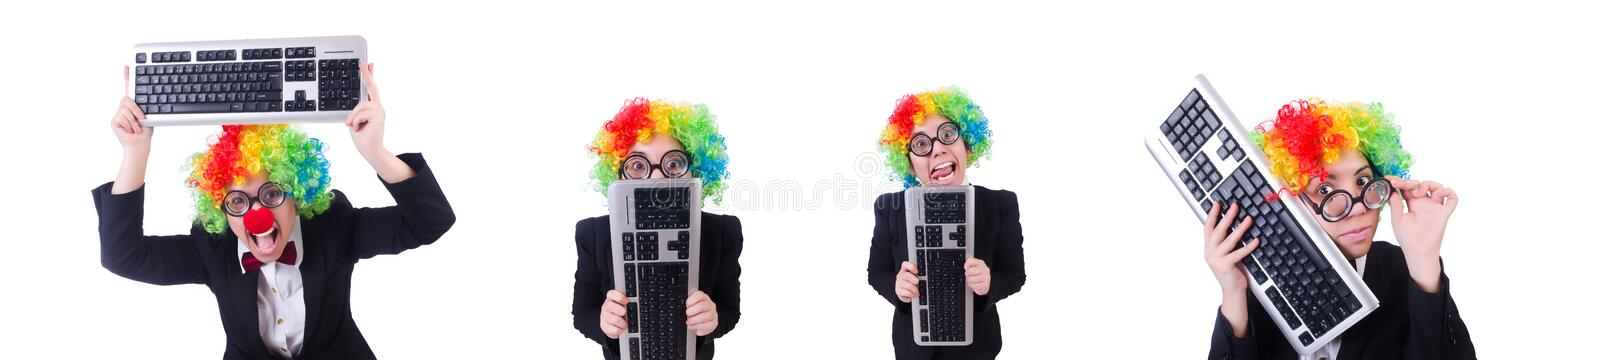 Funny clown with keyboard on white royalty free stock image